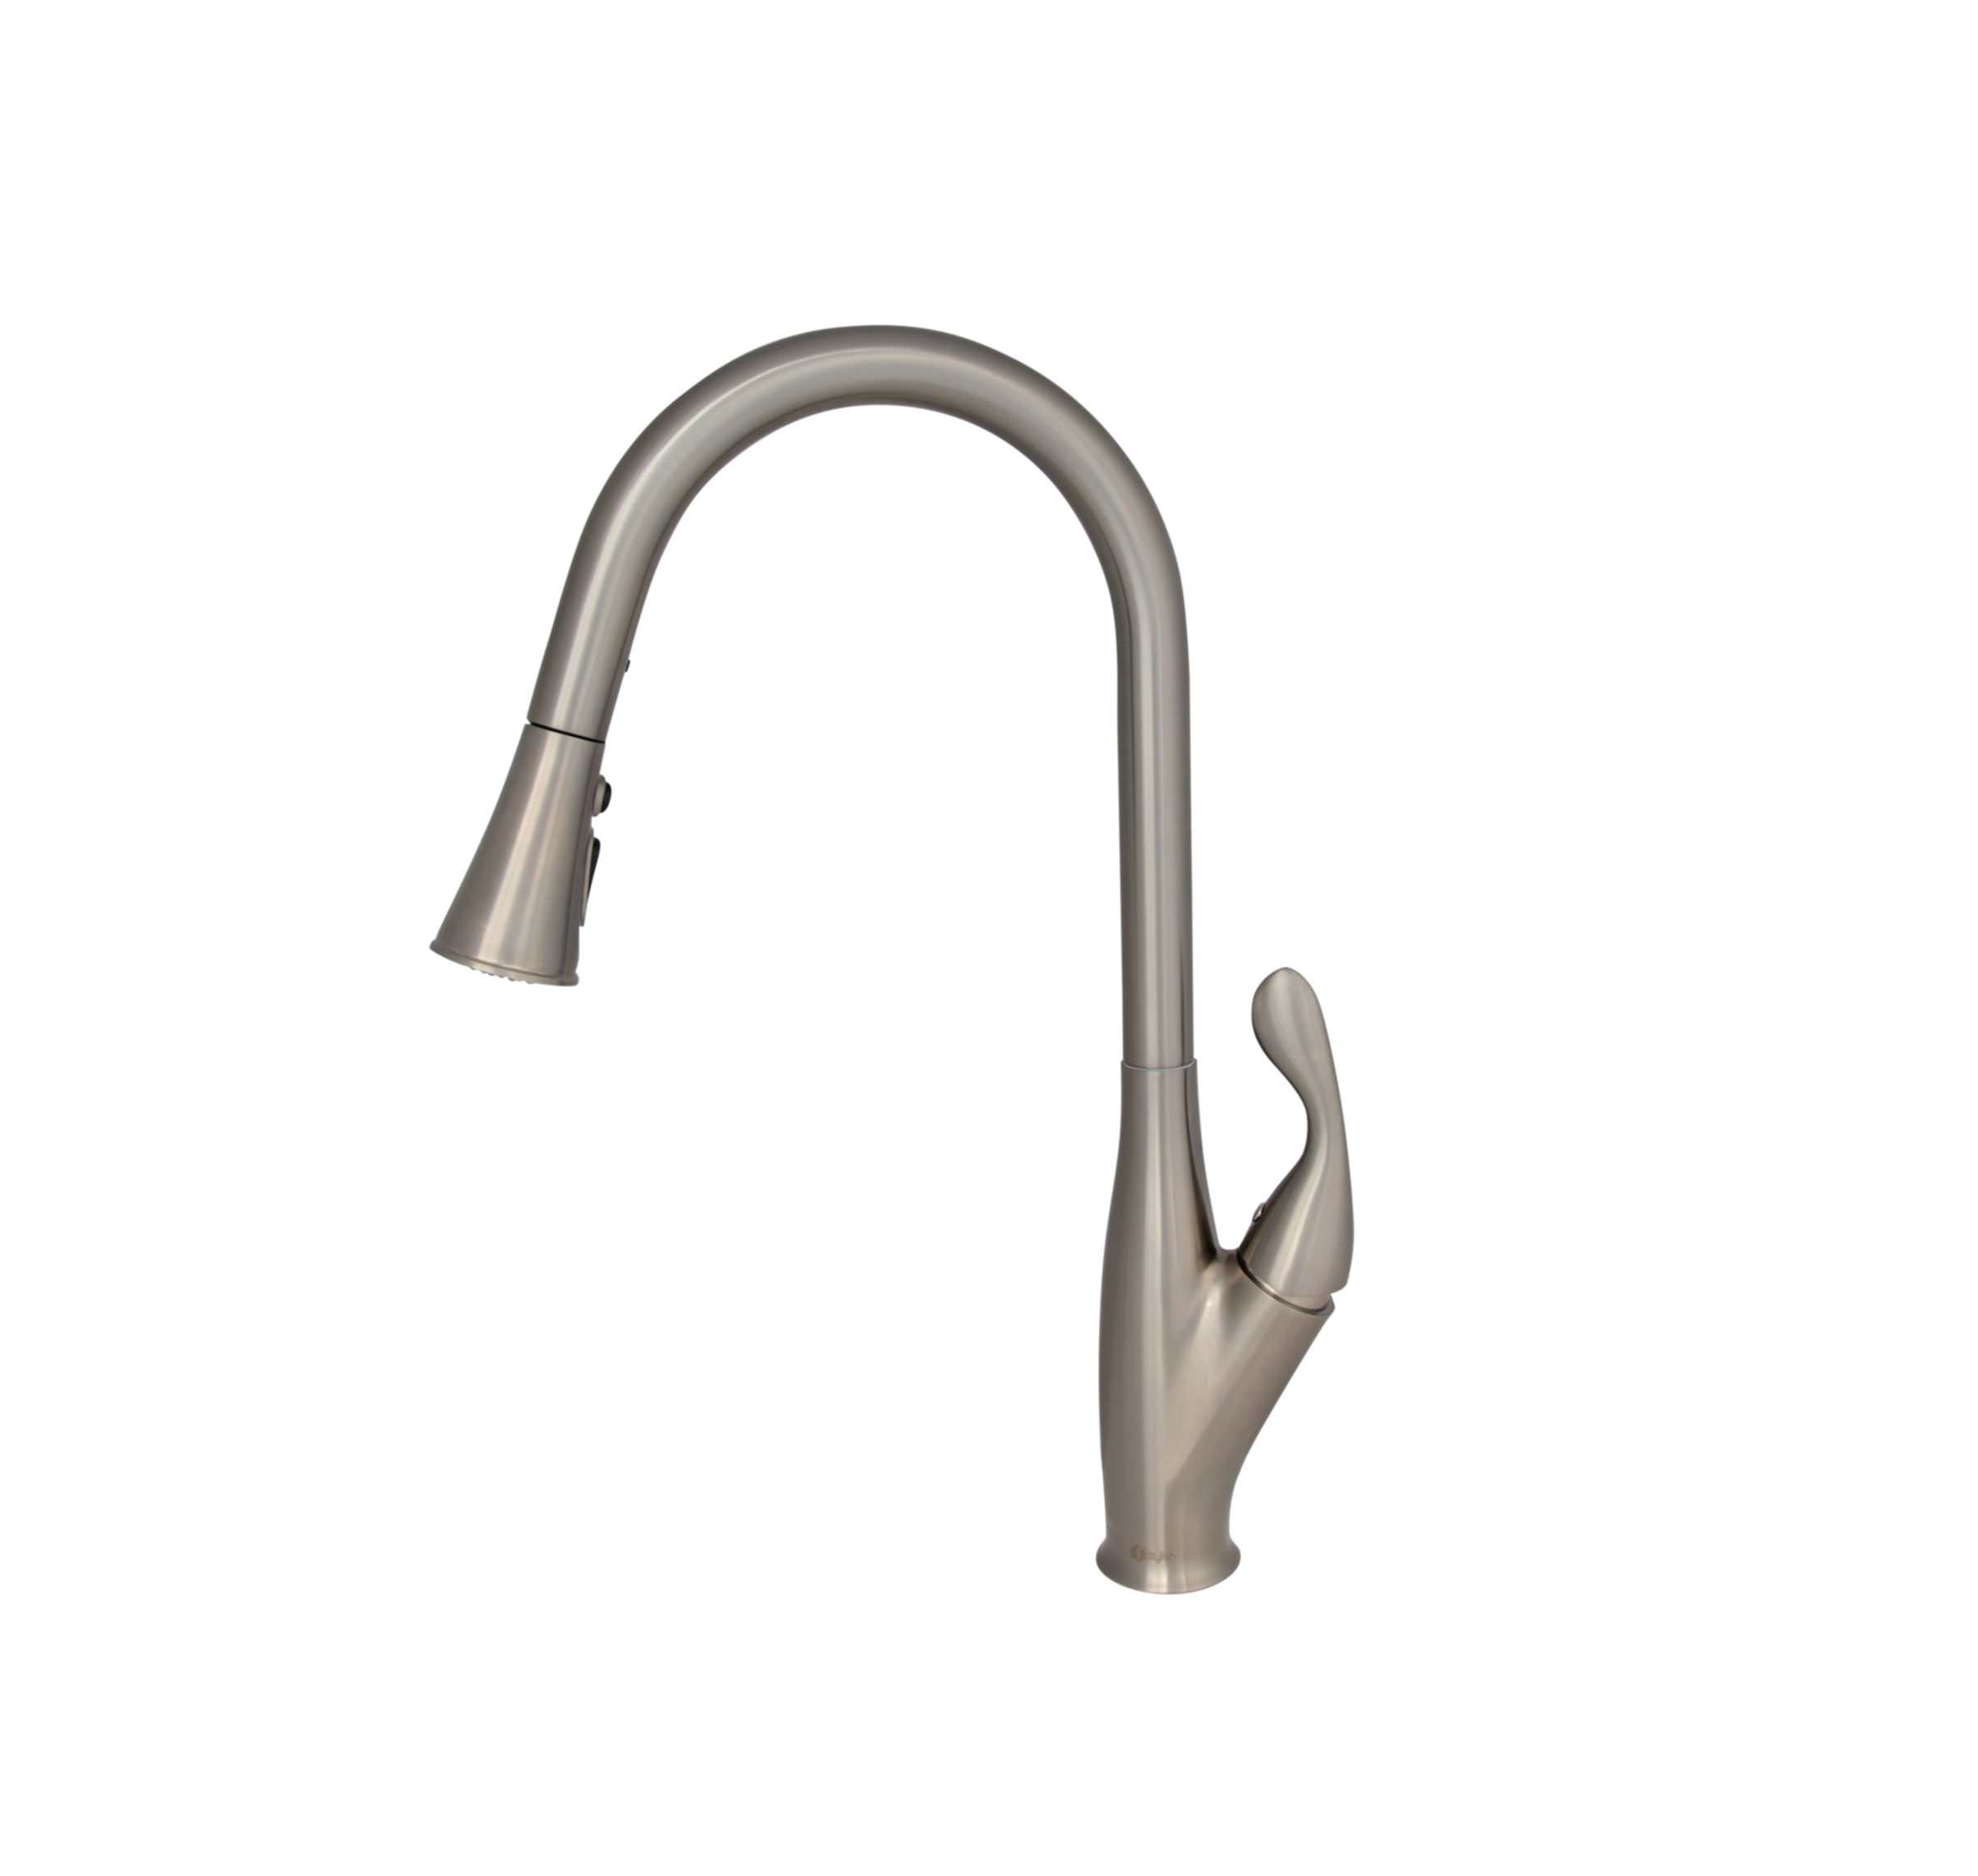 Stylish - Pull Down Kitchen Faucet  K-109B Brushed Nickel